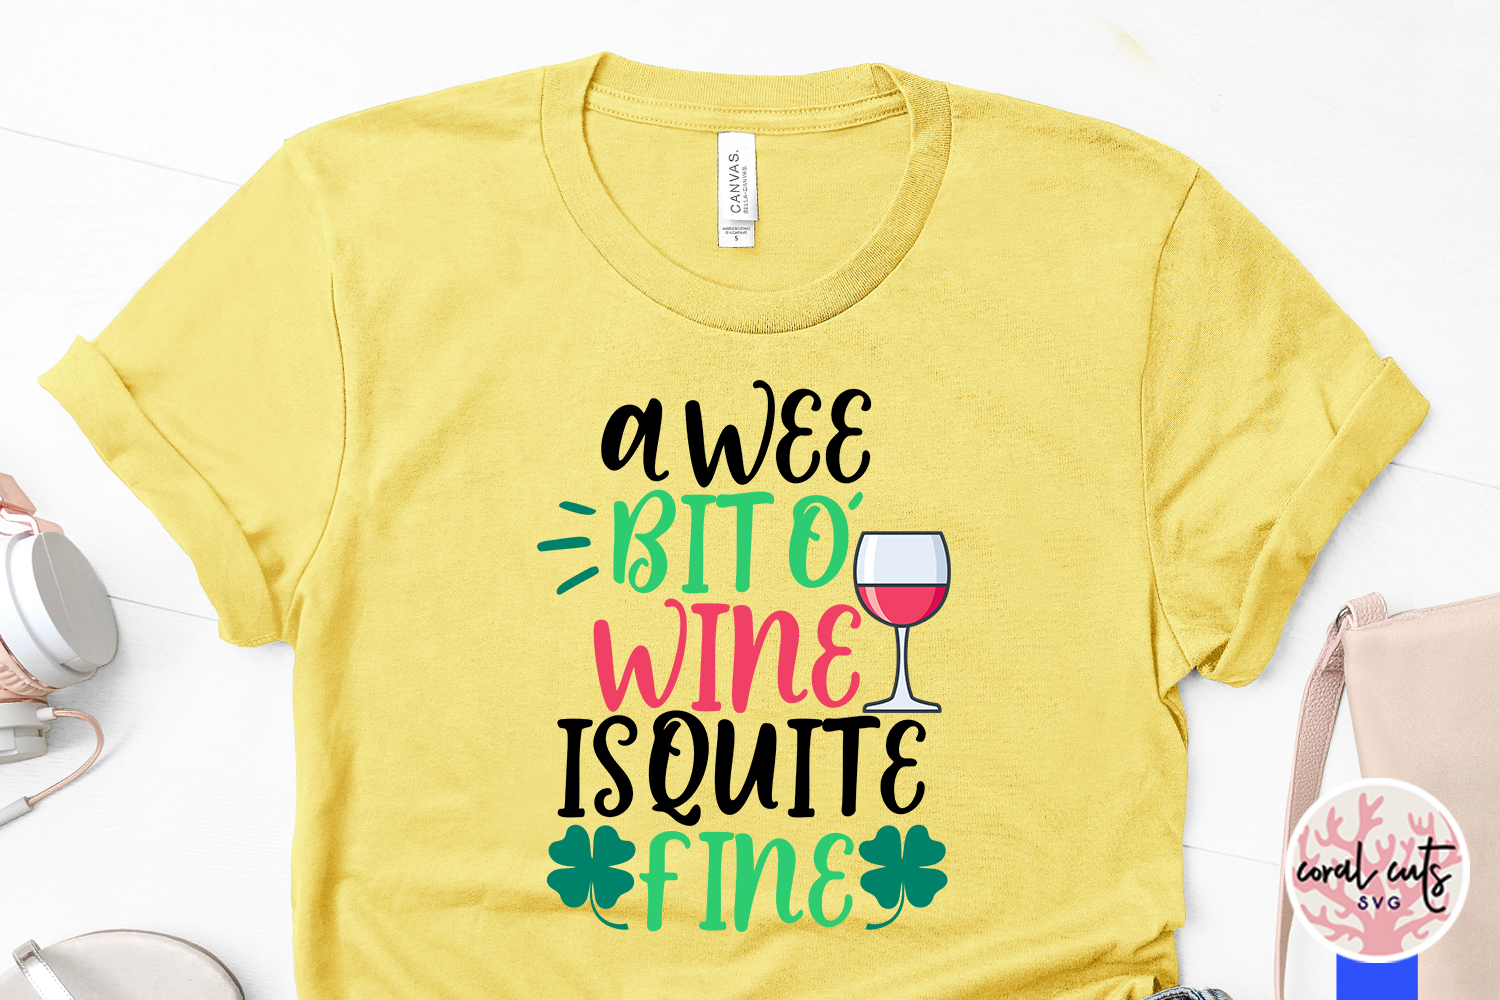 A wee bit o' wine is quite fine - St. Patrick's Day SVG EPS example image 3